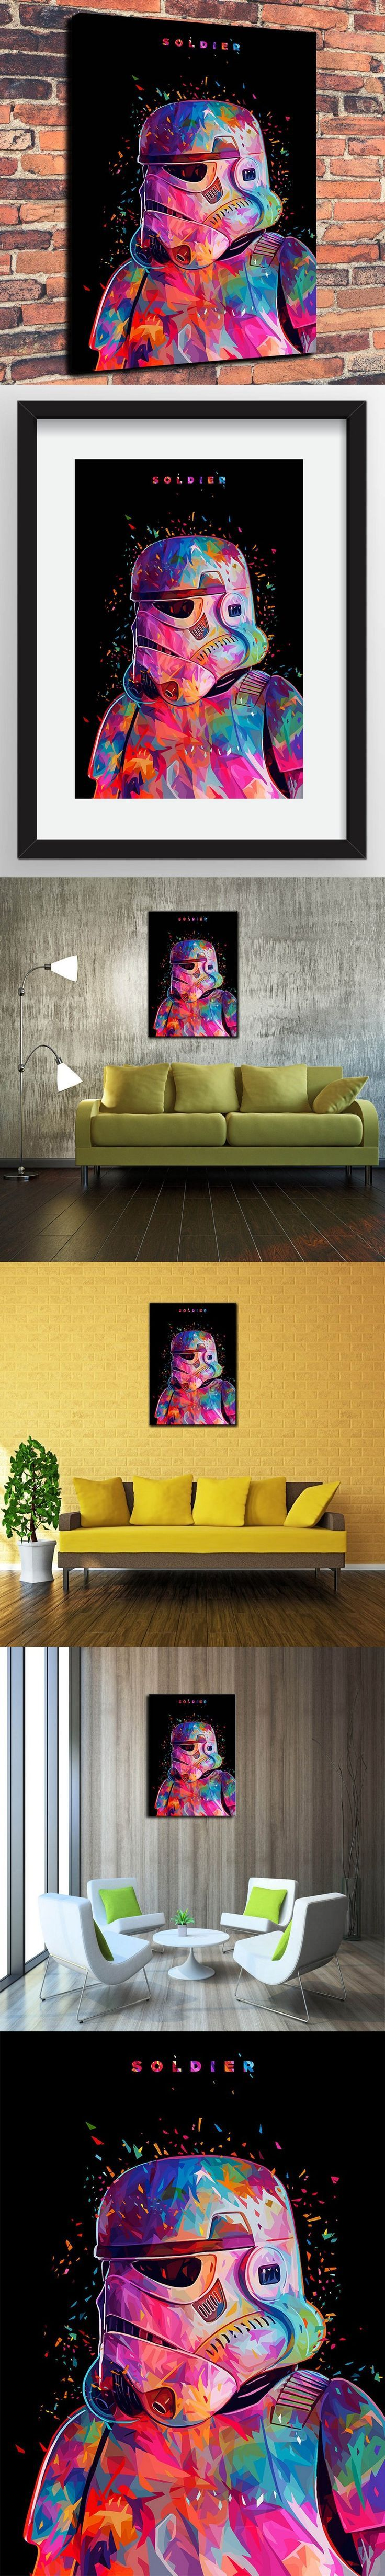 Canvas Prints Wall Art Decorative Painting Western Home Decor Which Star  Wars Slodier( No Framed )